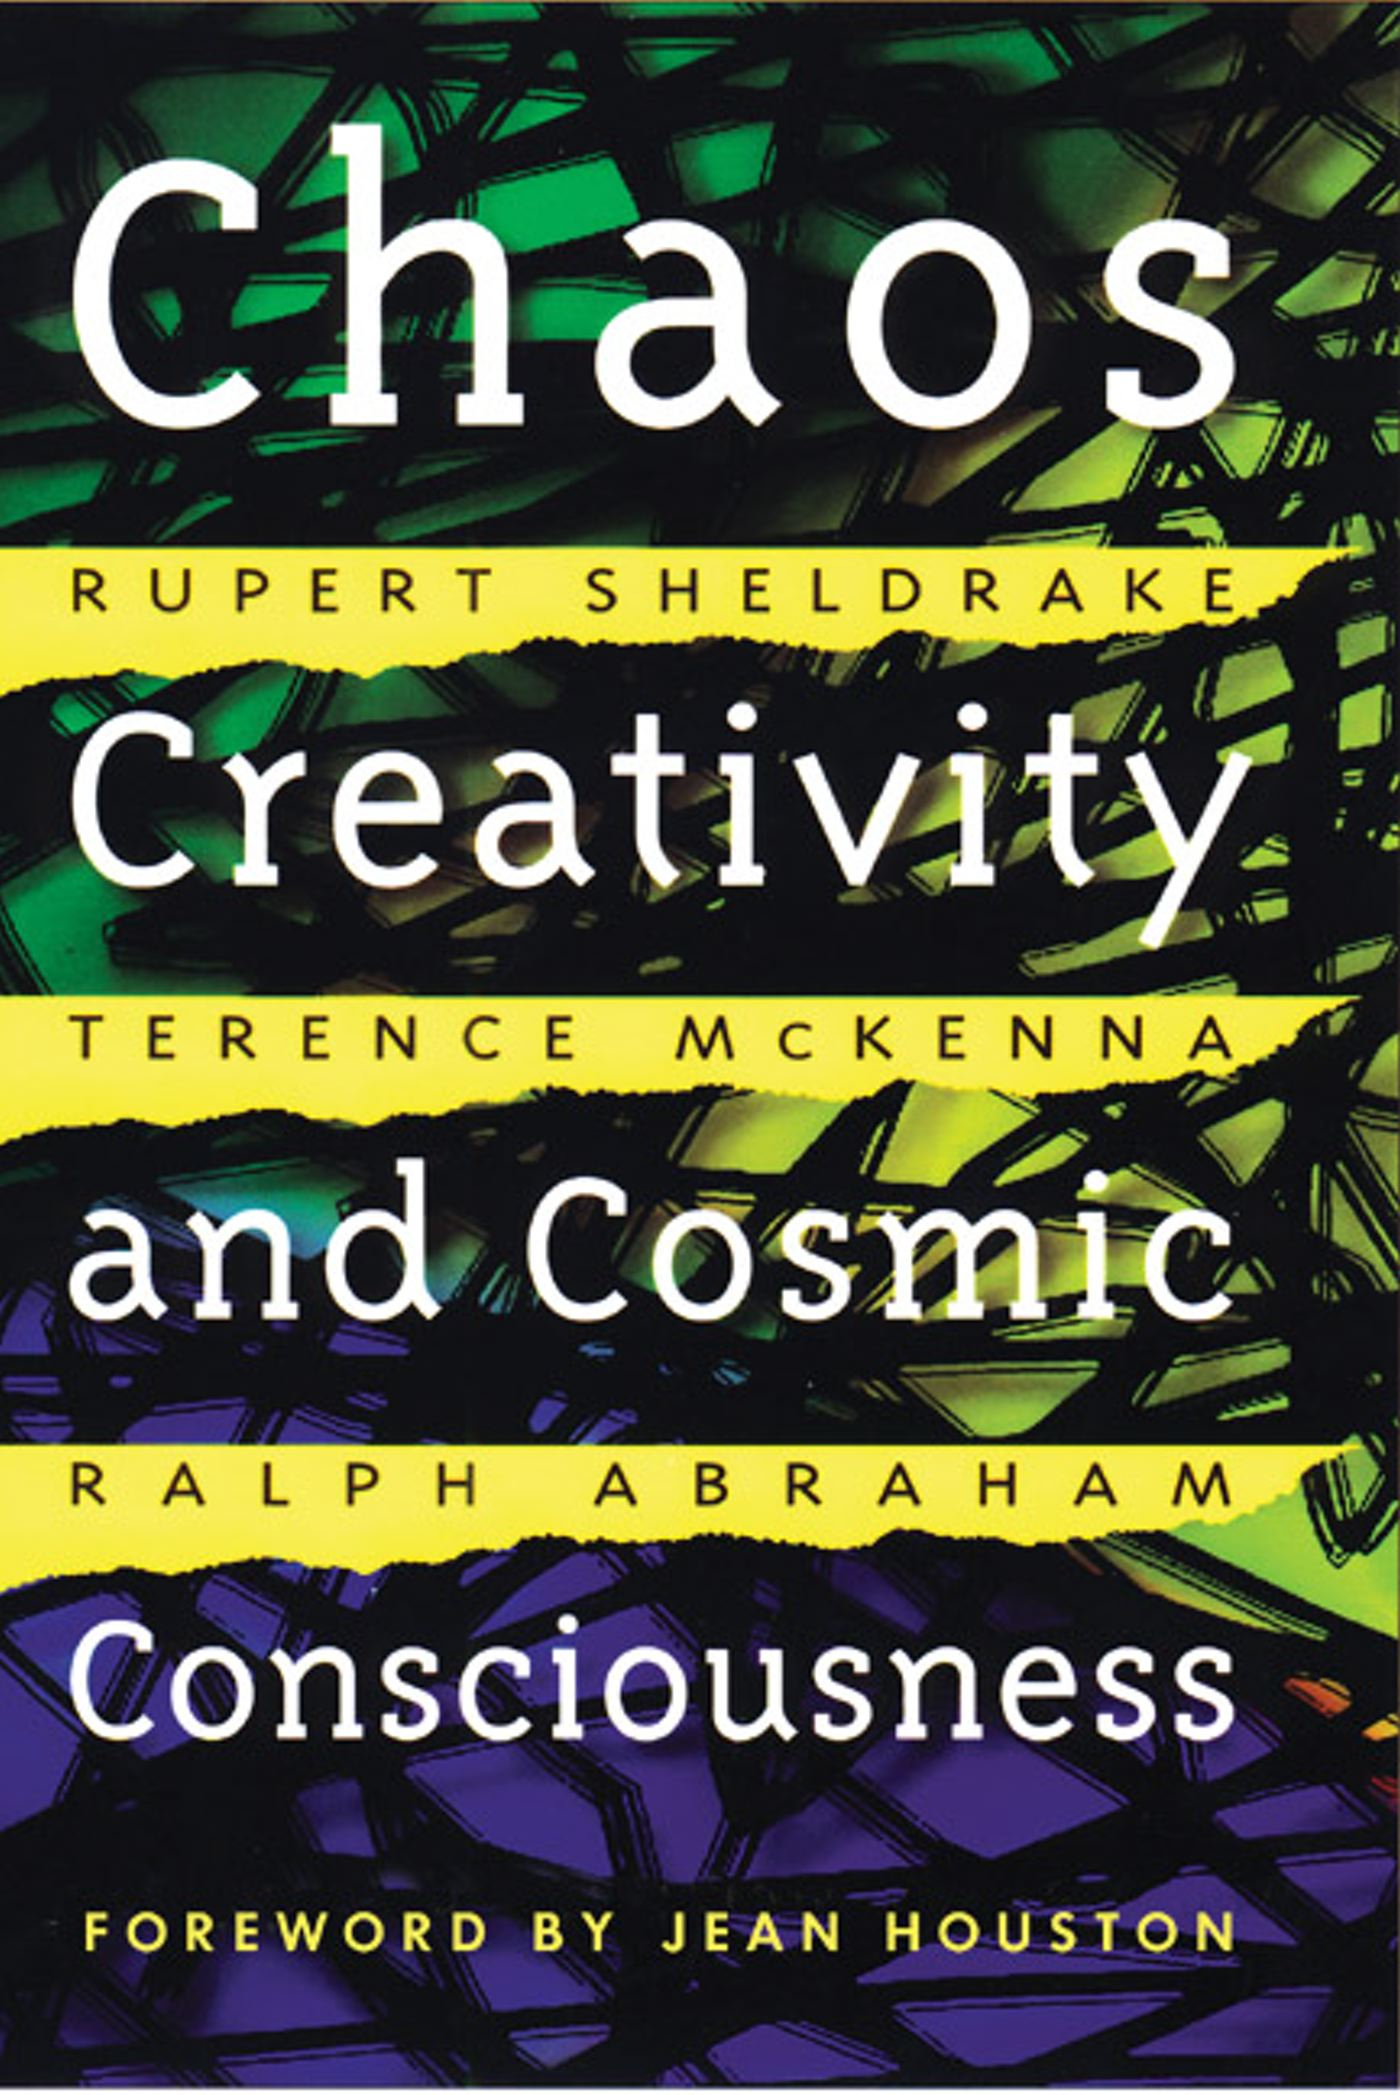 Chaos creativity and cosmic consciousness 9780892819775 hr